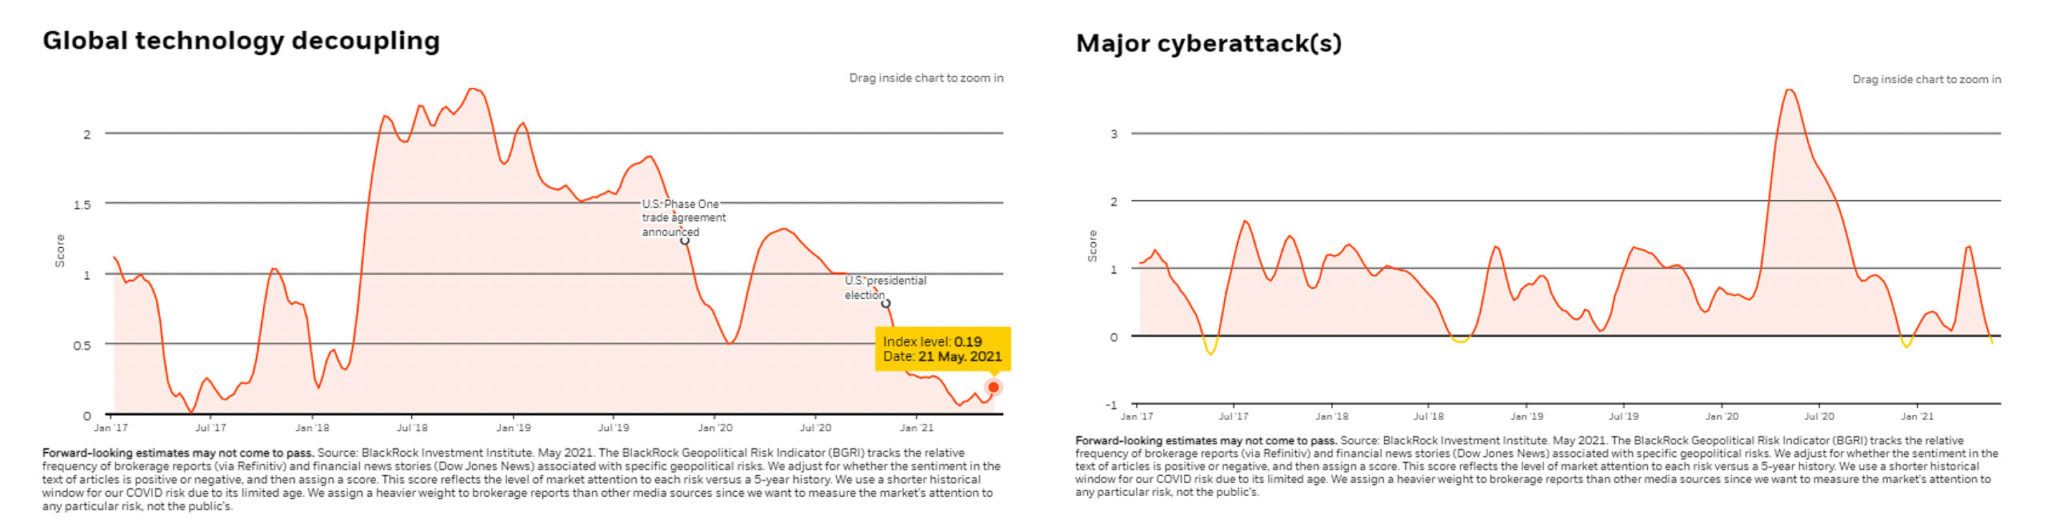 Gráficas Global technology decoupling - Meor cyberattack(s)